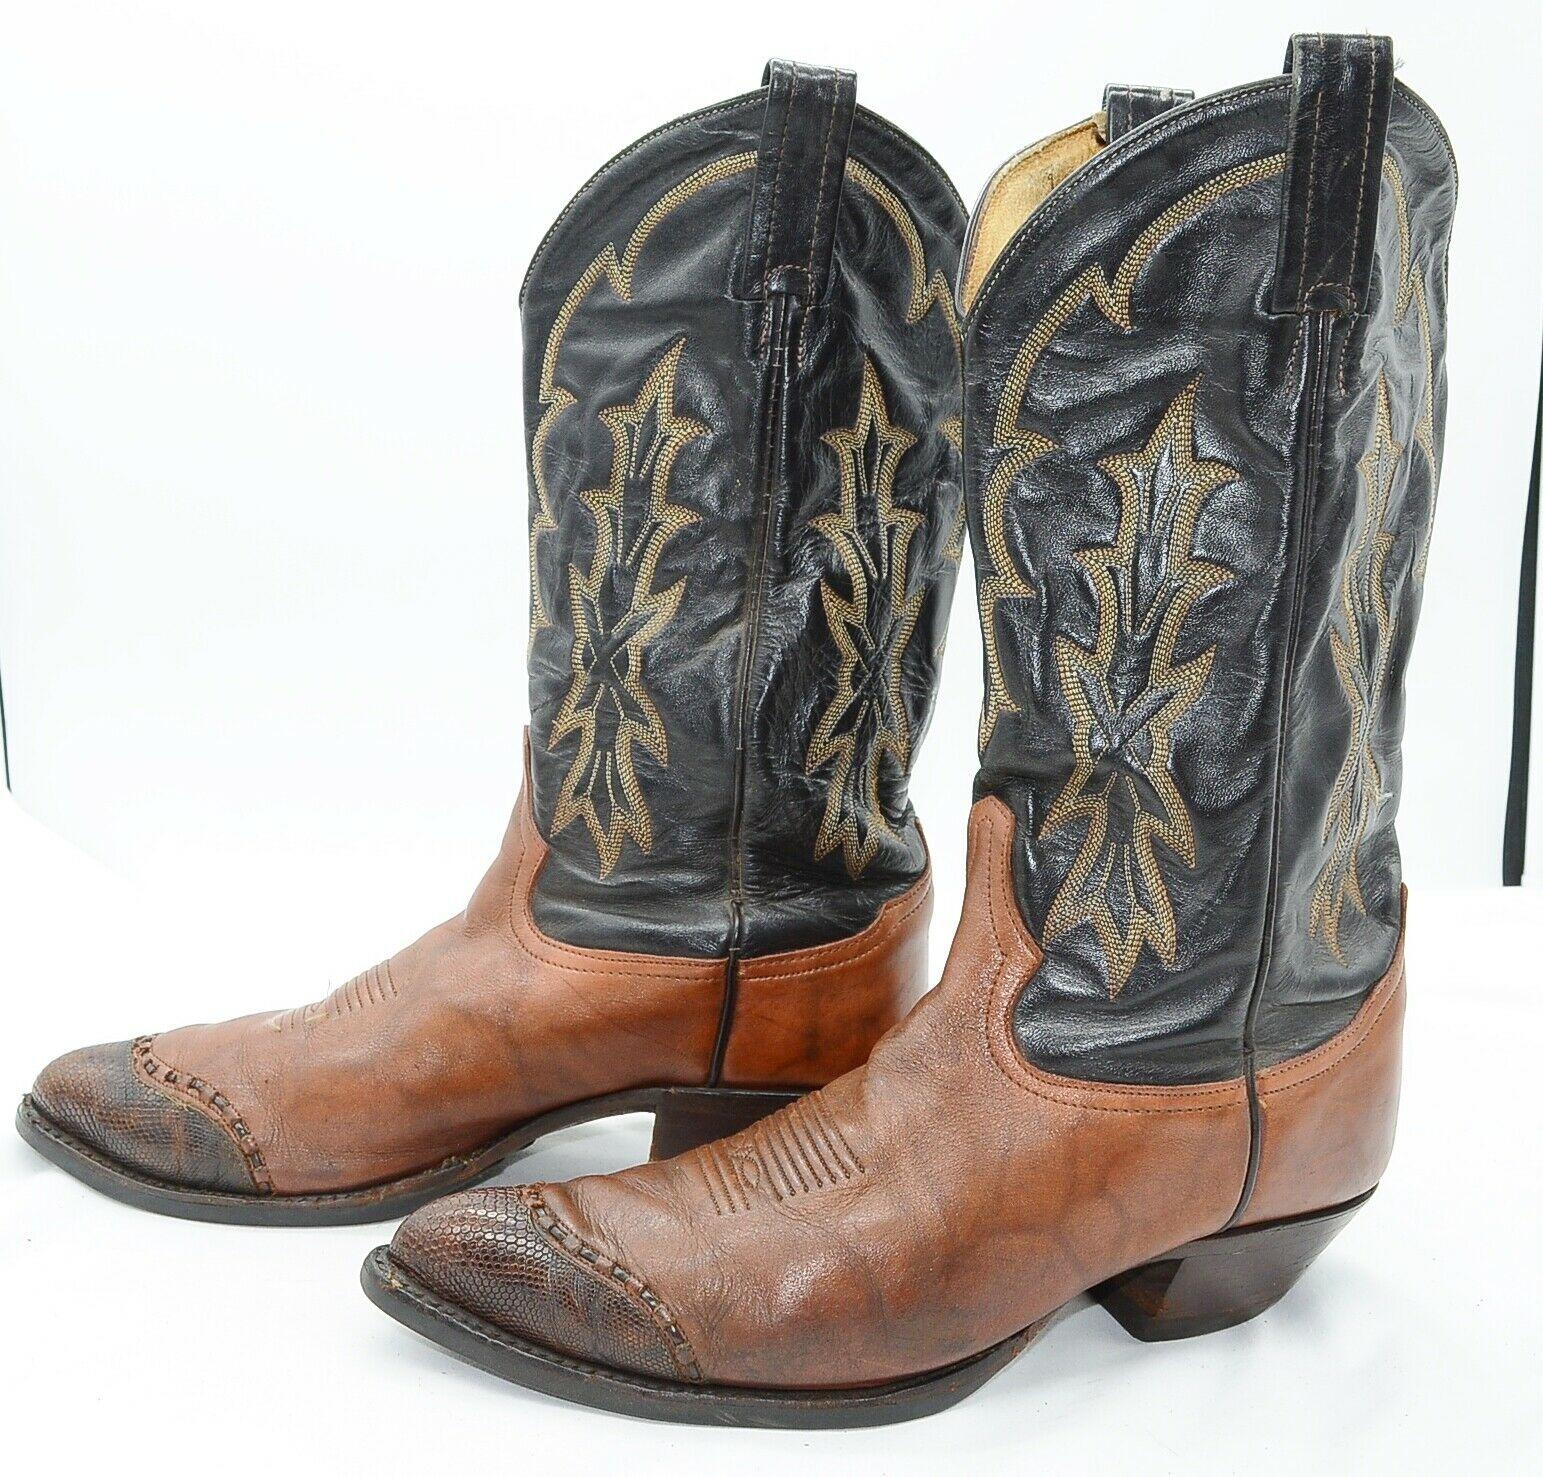 Tony Lama 6931 USA Cowboy Sz 9.5 2-Tone Leather Work Western Riding Biker Boots